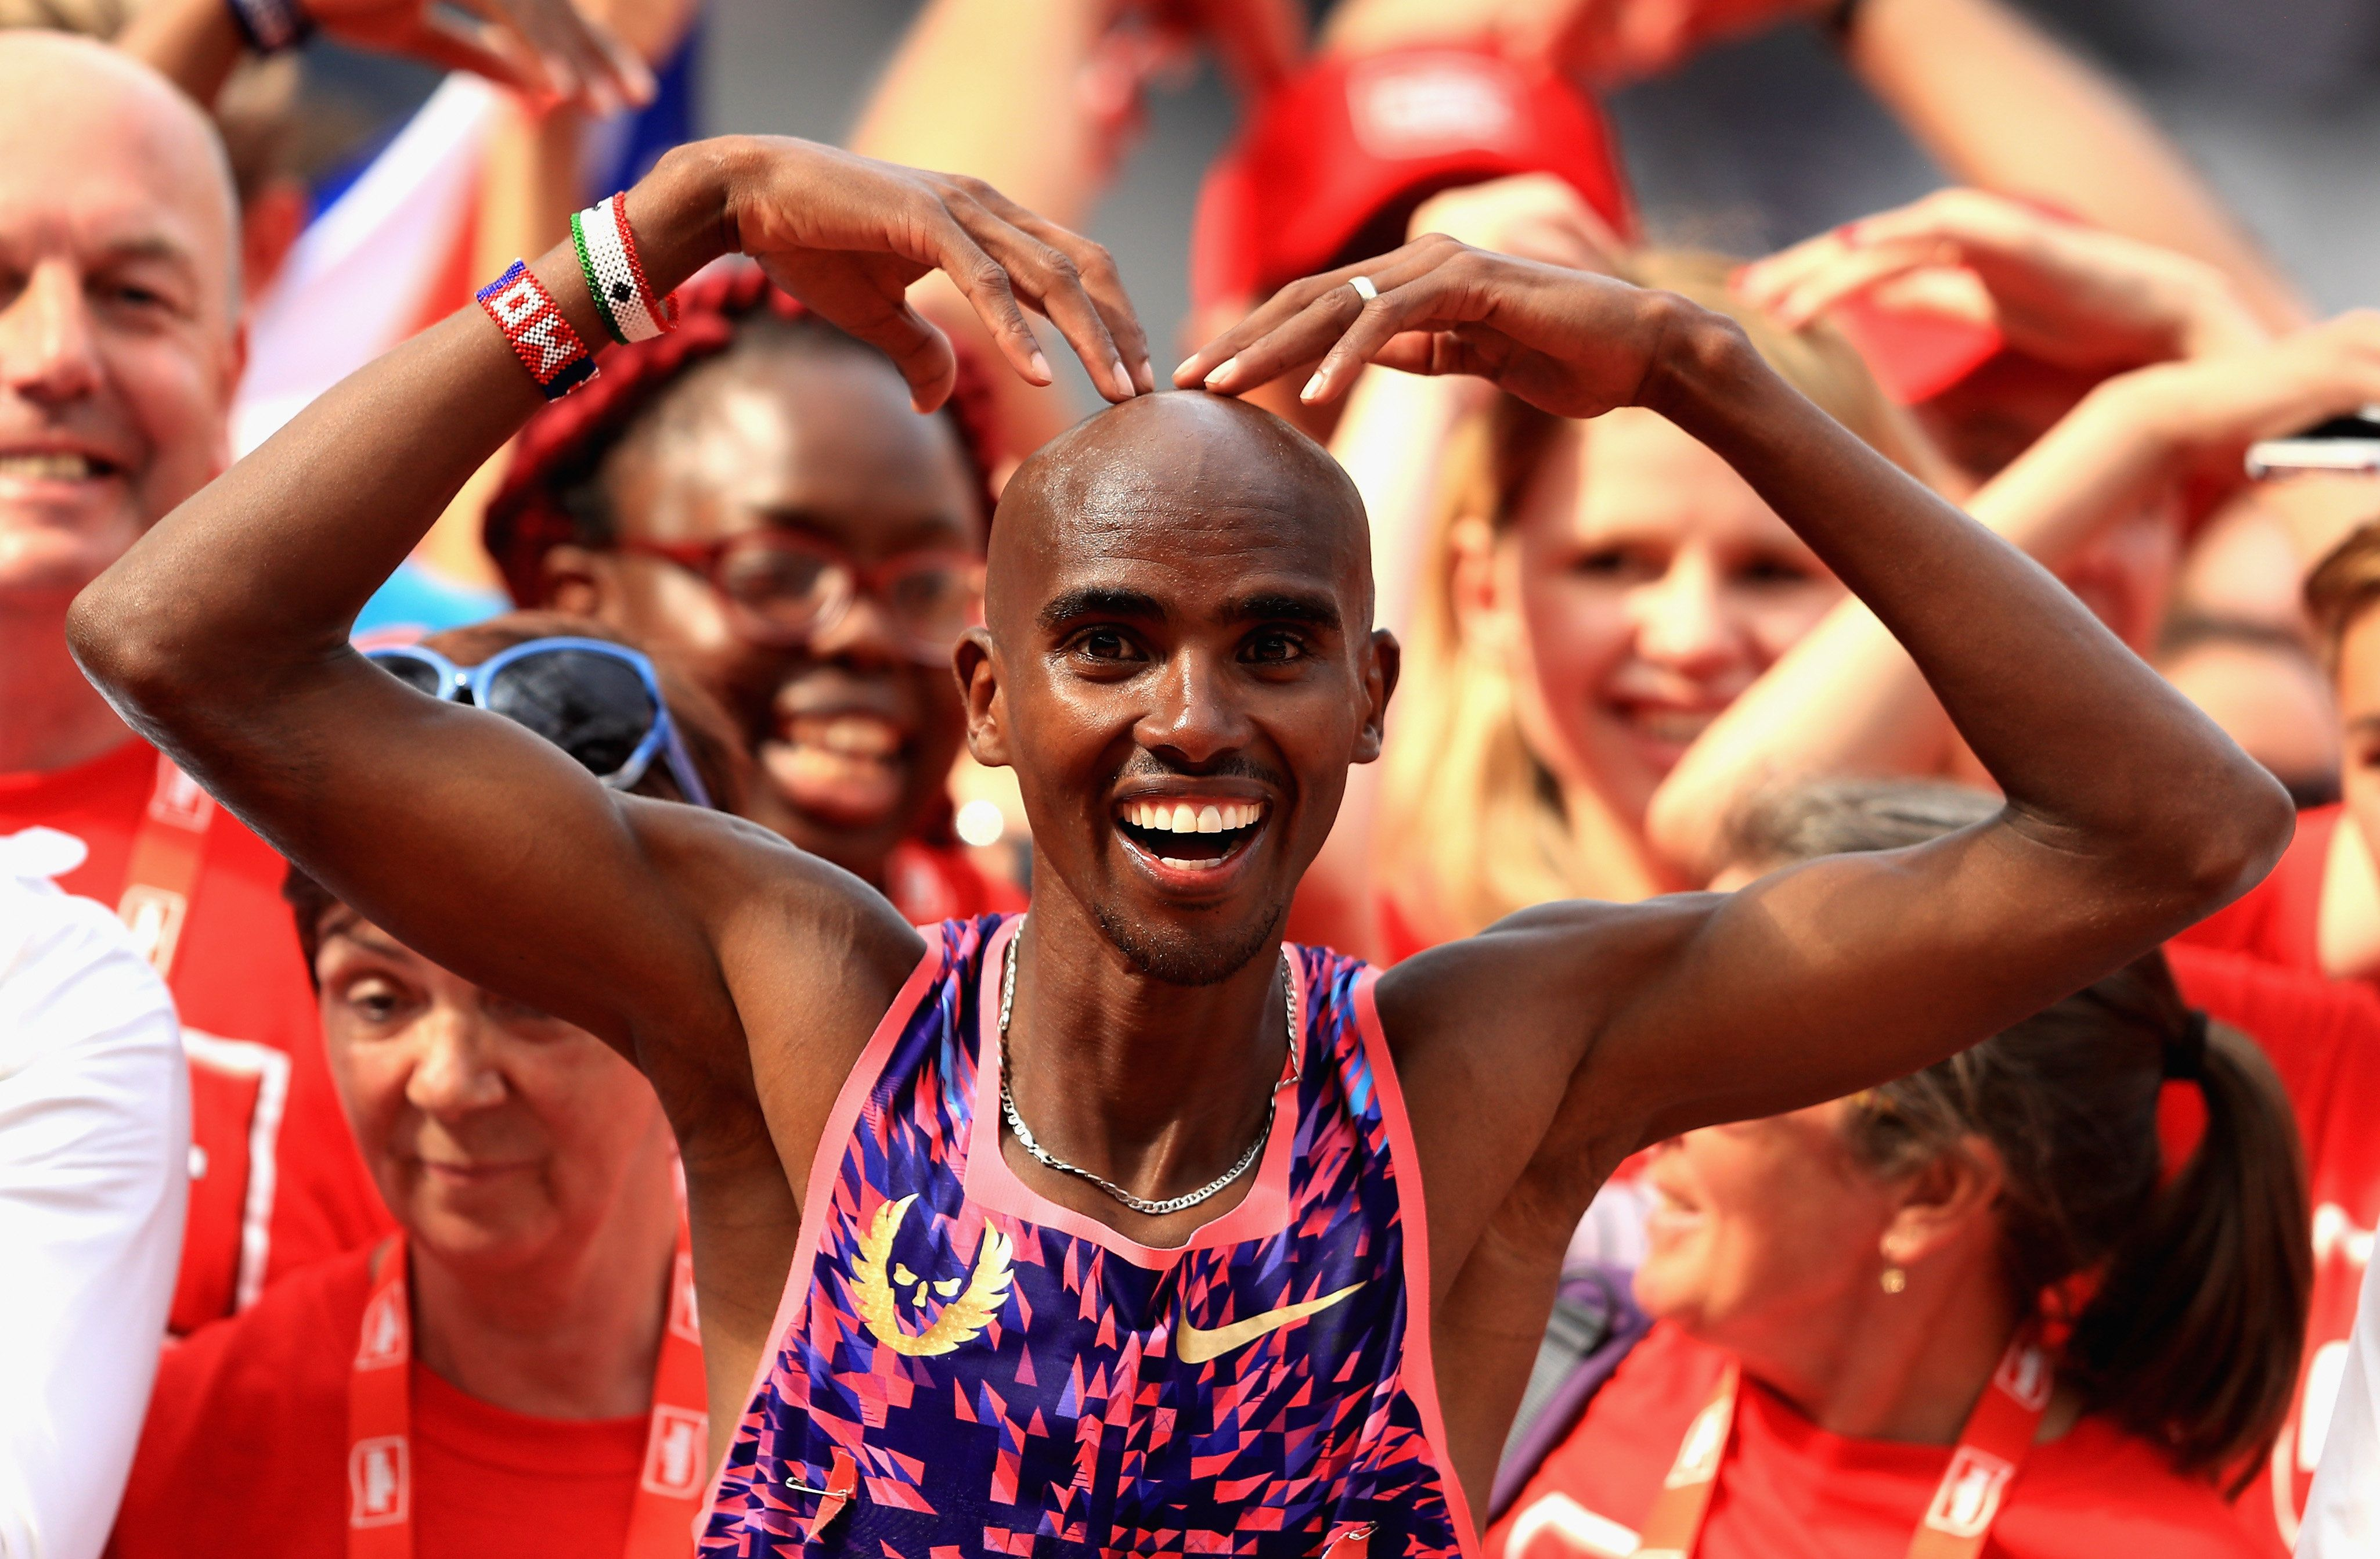 Mo Farah's Liam Gallagher Slip-Up Sparks Hilarious Response On